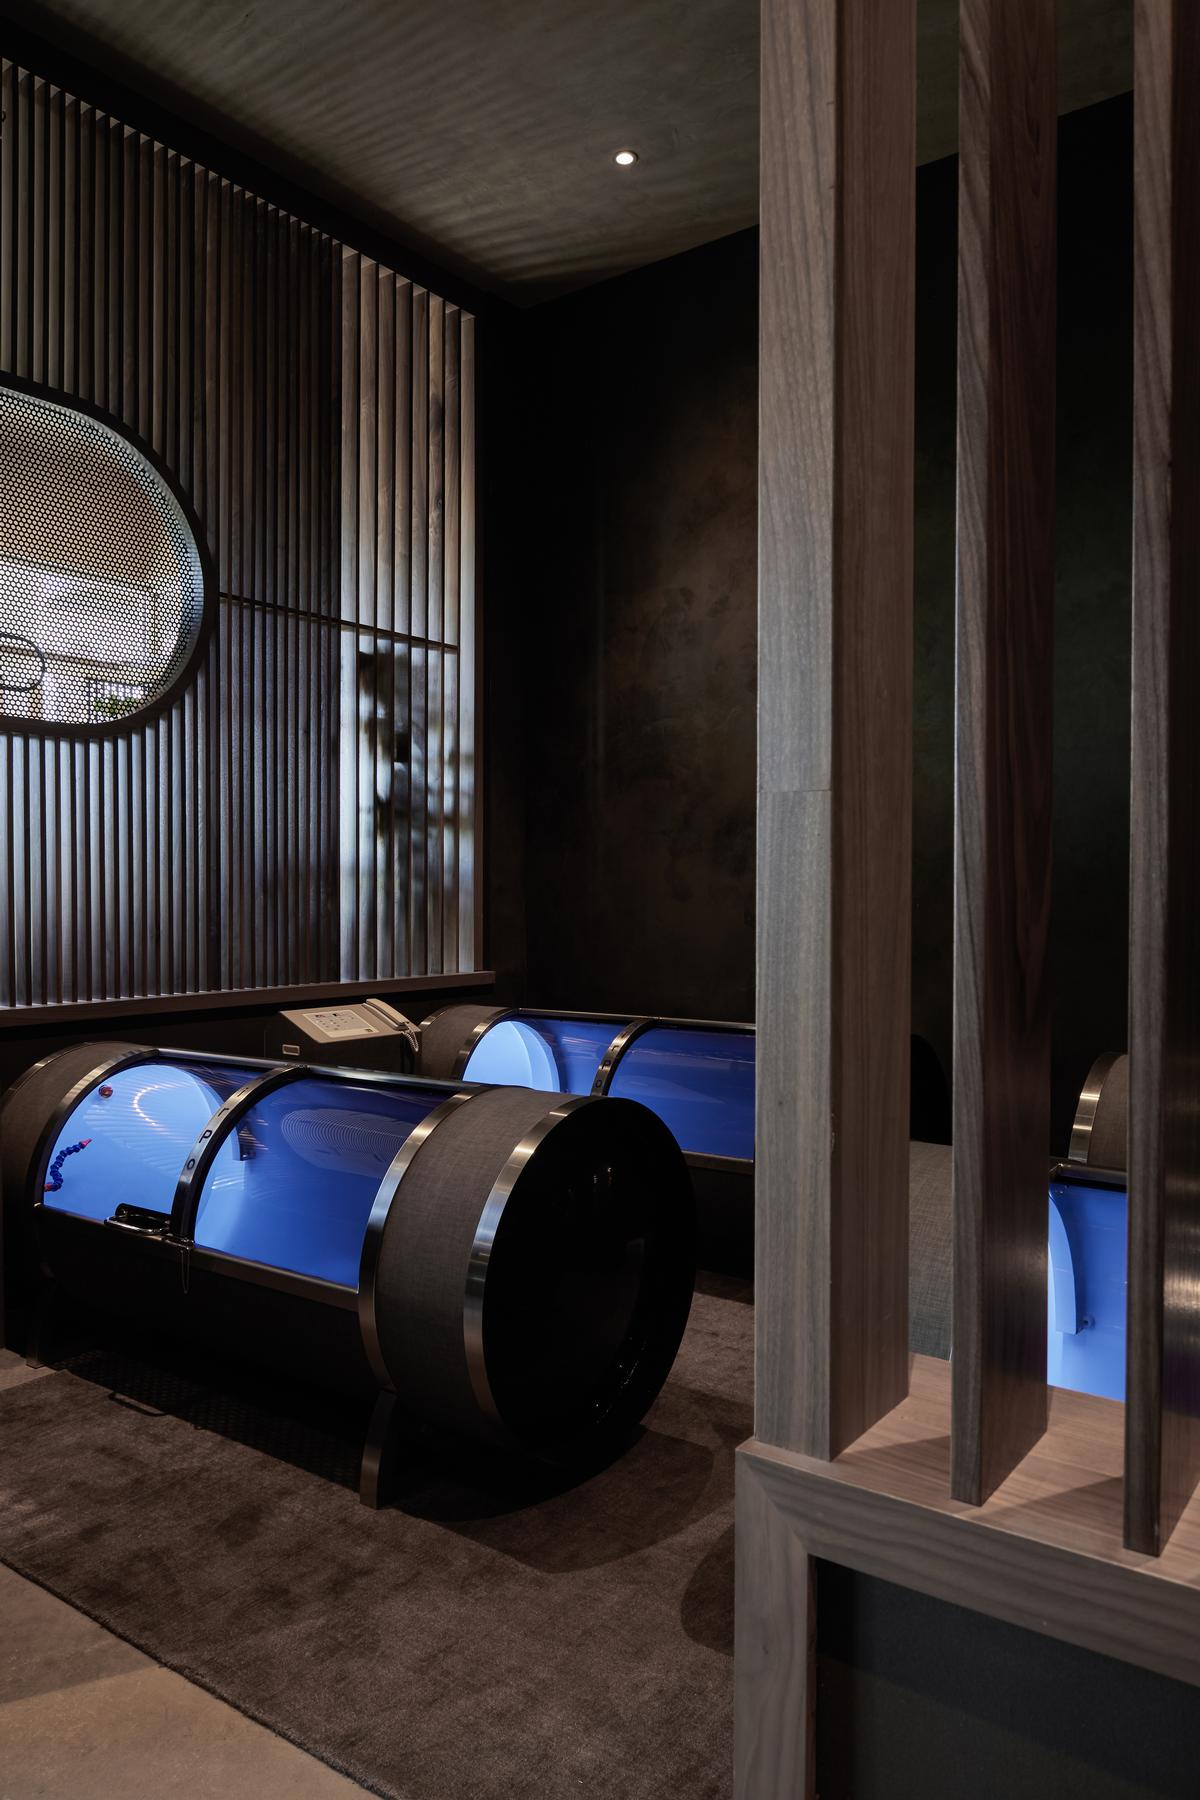 There are facilities for hyperbaric chamber oxygen therapy